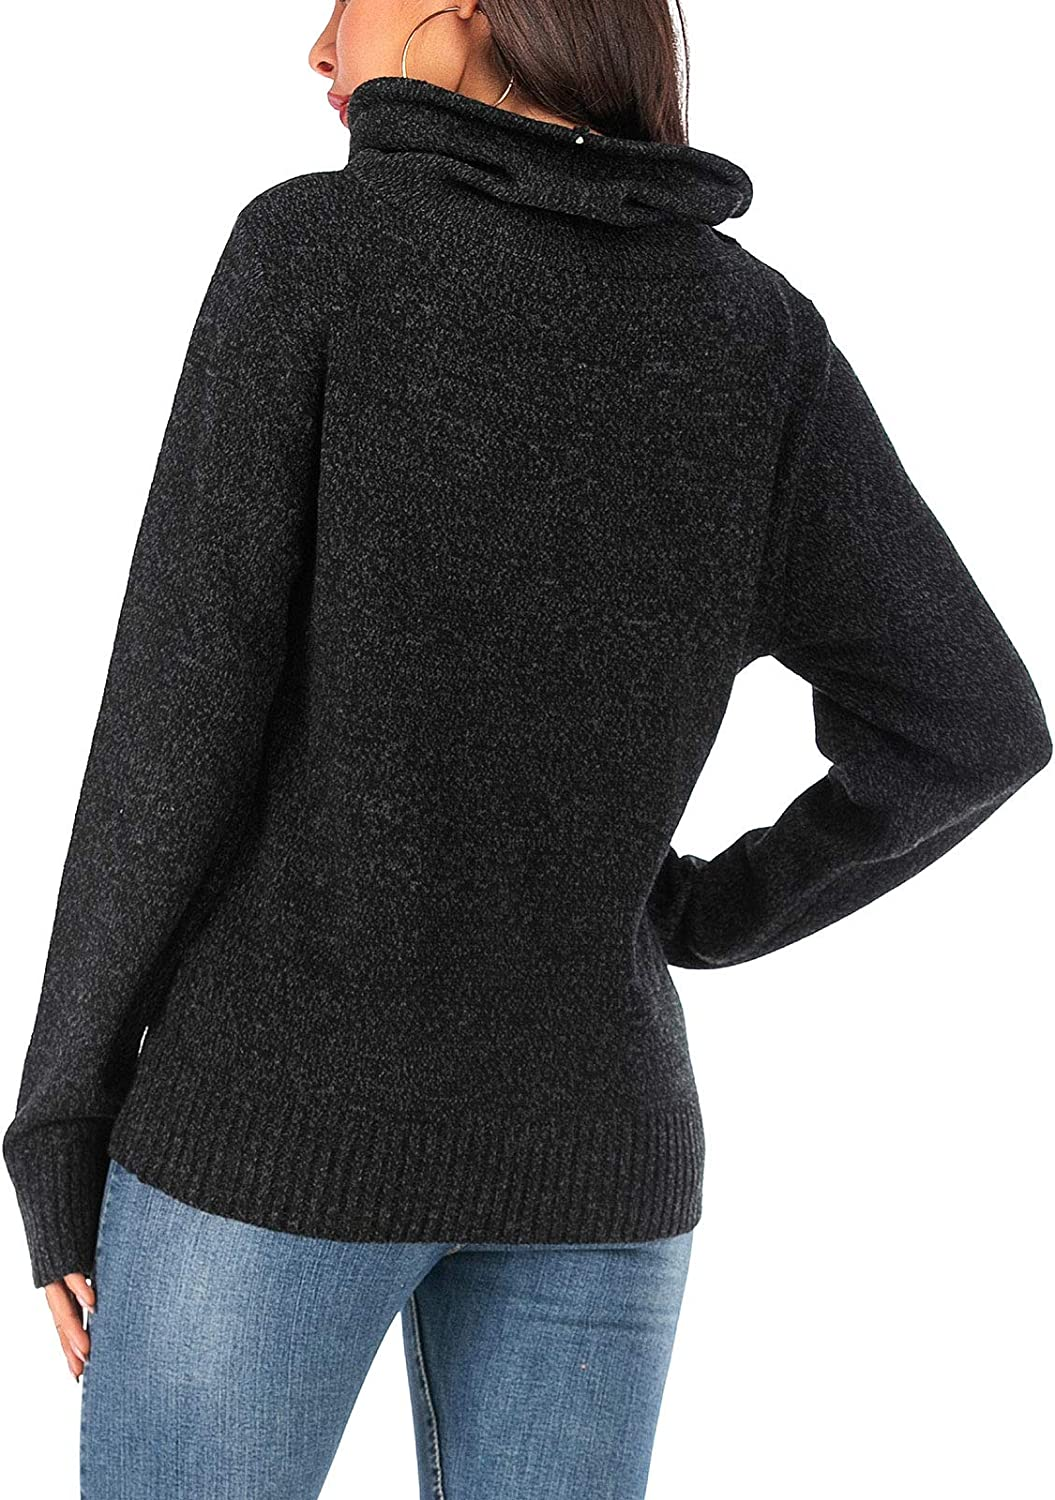 Les umes Womens Casual Knitted Turtleneck Sweaters Jumpers Long Sleeve Pullover Tops with Drawstring